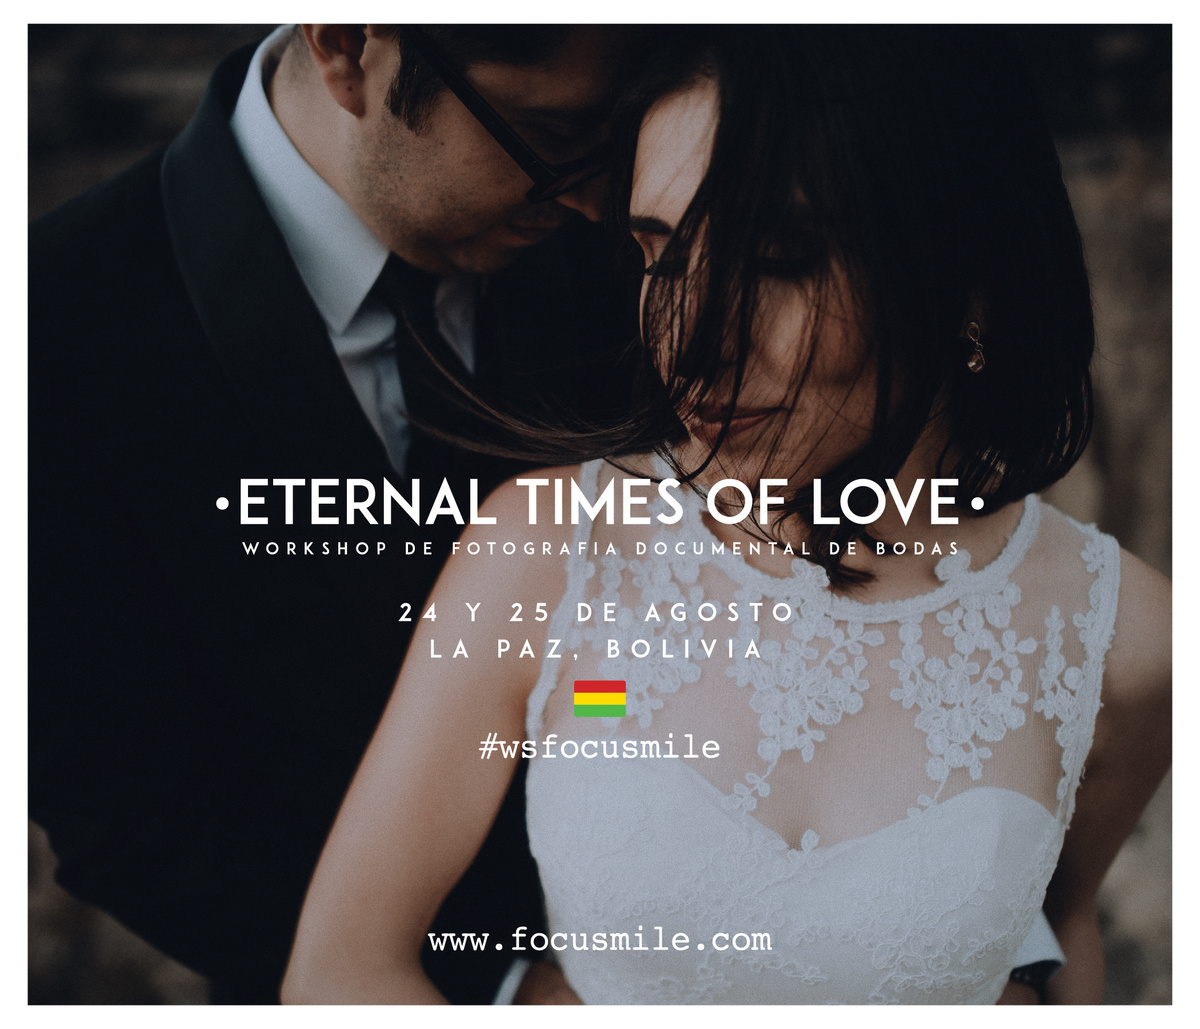 Imagem capa - Workshop - ETERNAL TIMES OF LOVE - LA PAZ, BOLIVIA 24 Y 25 DE AGOSTO DE 2019 por Focusmile Fotógrafos